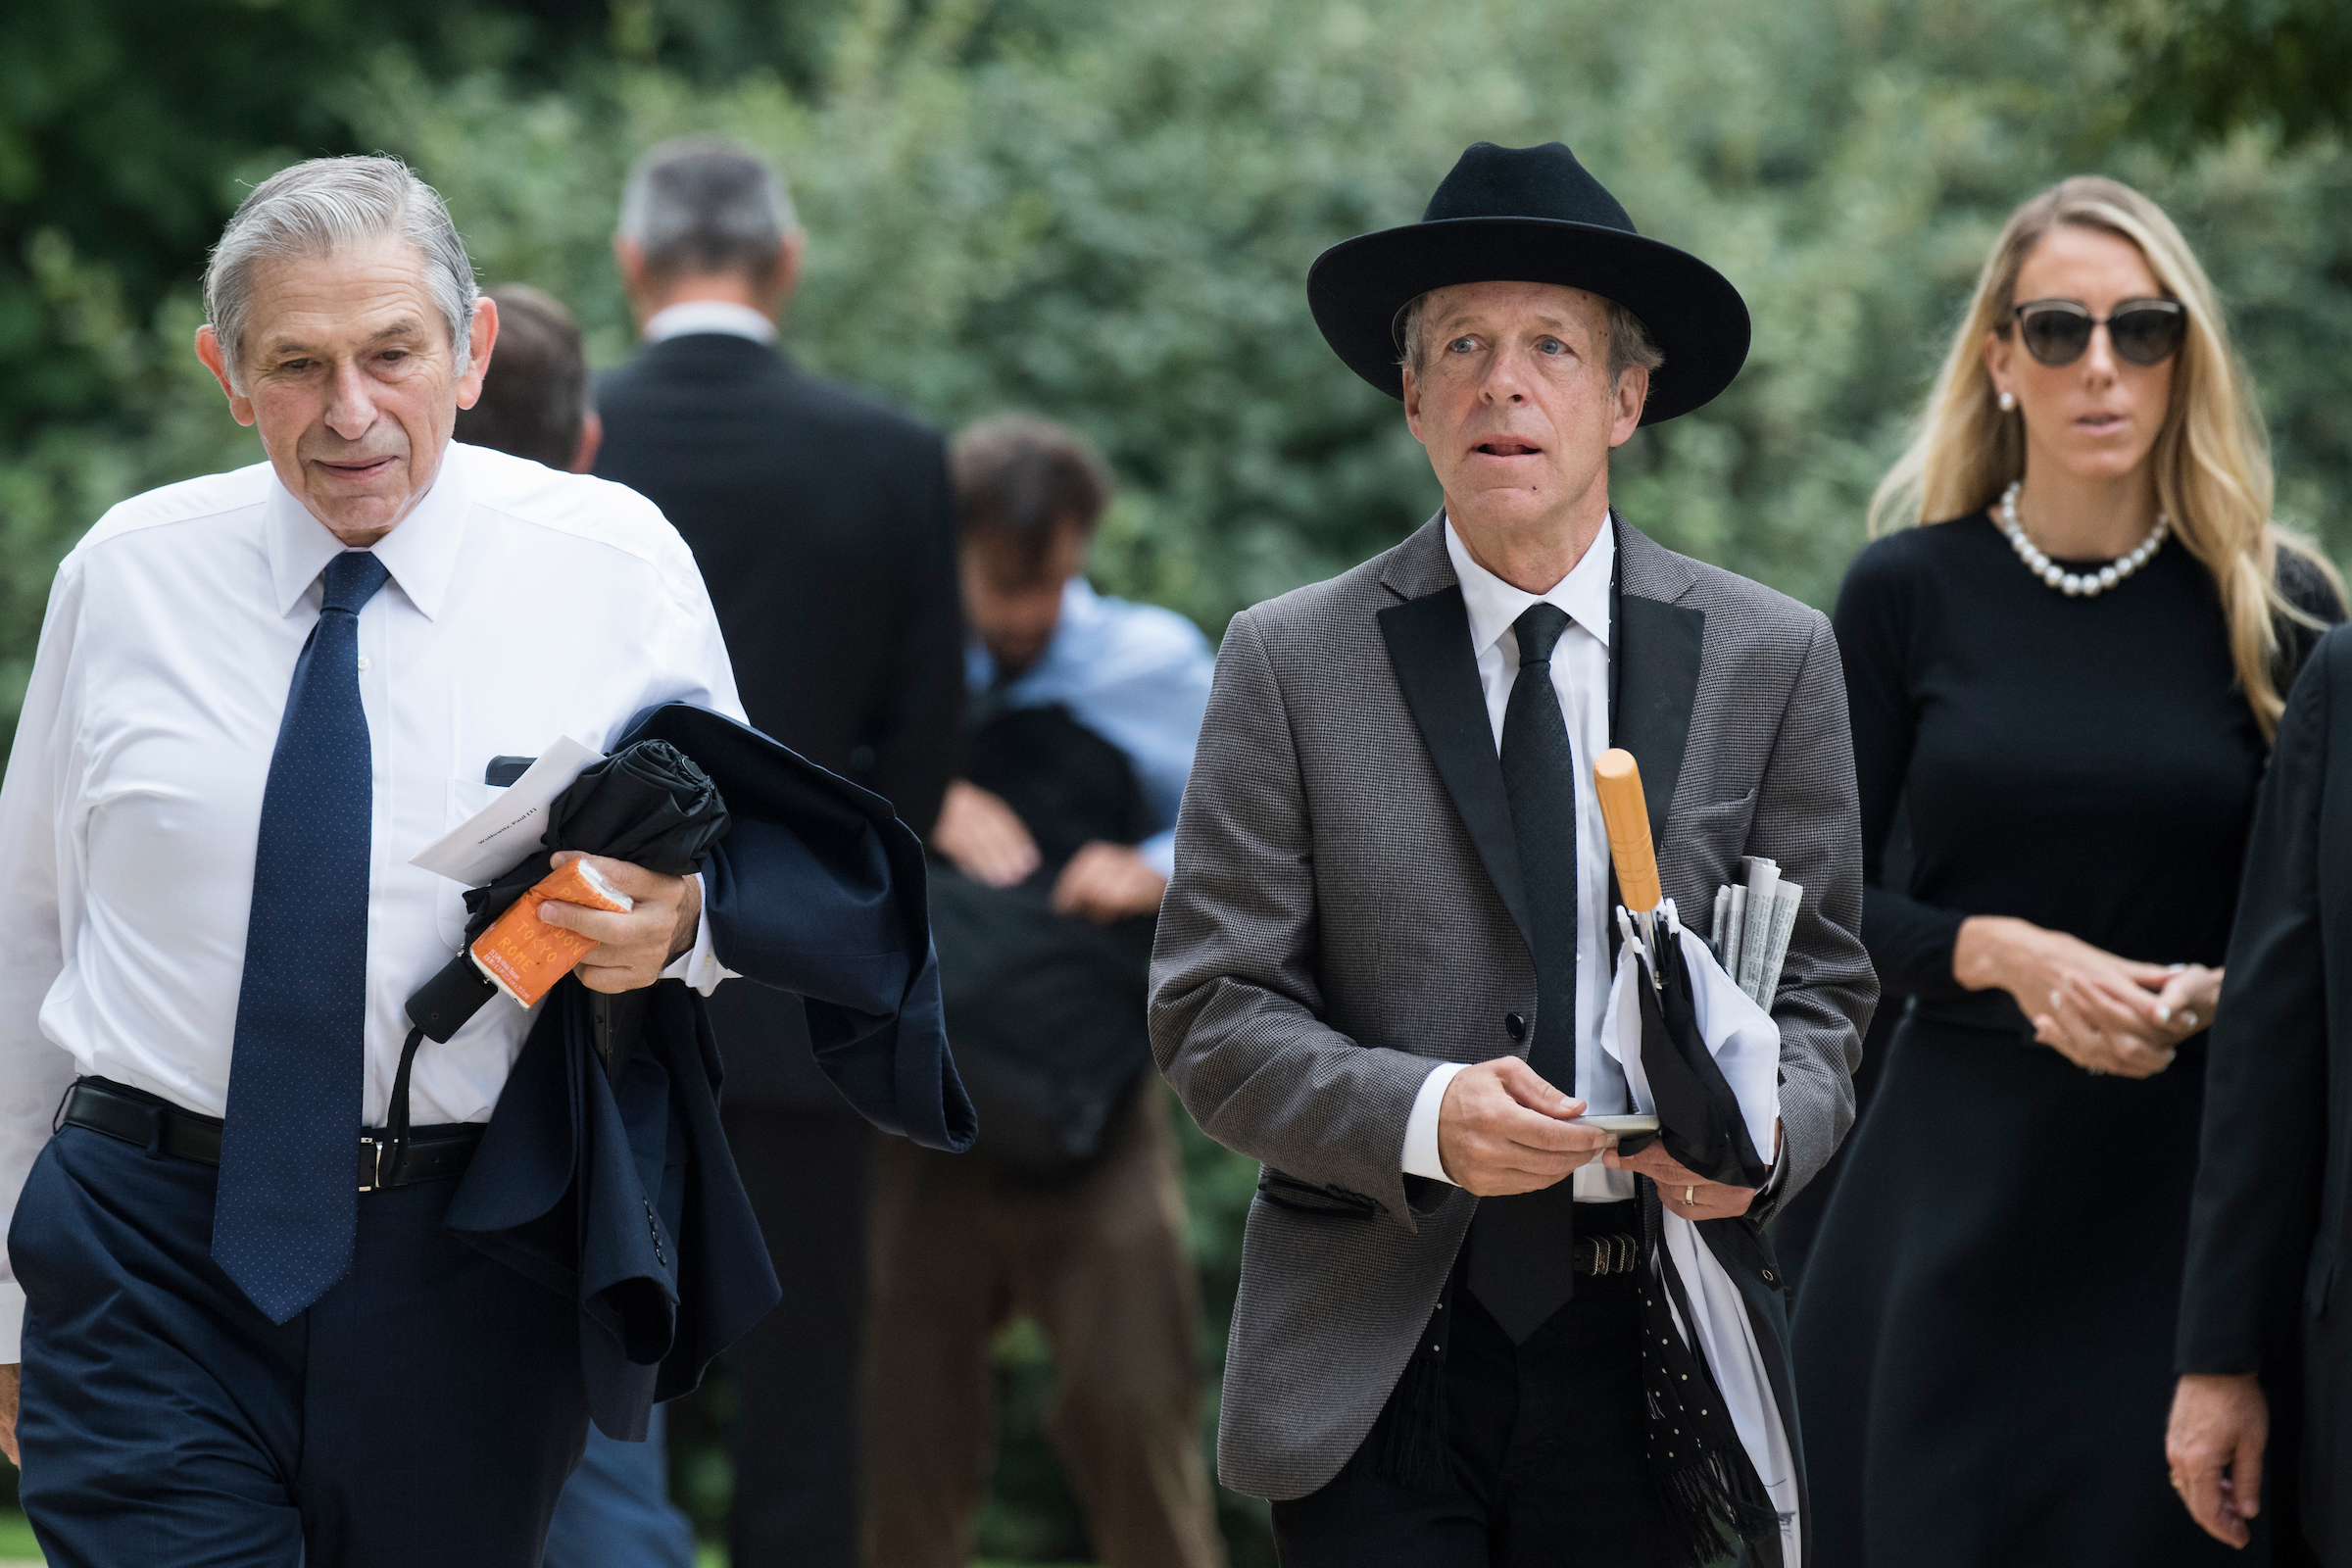 UNITED STATES - SEPTEMBER 1: Mark Mckinnon, right, and Paul Wolfowitz, former deputy secretary of defense, arrive for the funeral of the late Sen. John McCain, R-Ariz., at the Washington National Cathedral on September 1, 2018. (Photo By Tom Williams/CQ Roll Call)